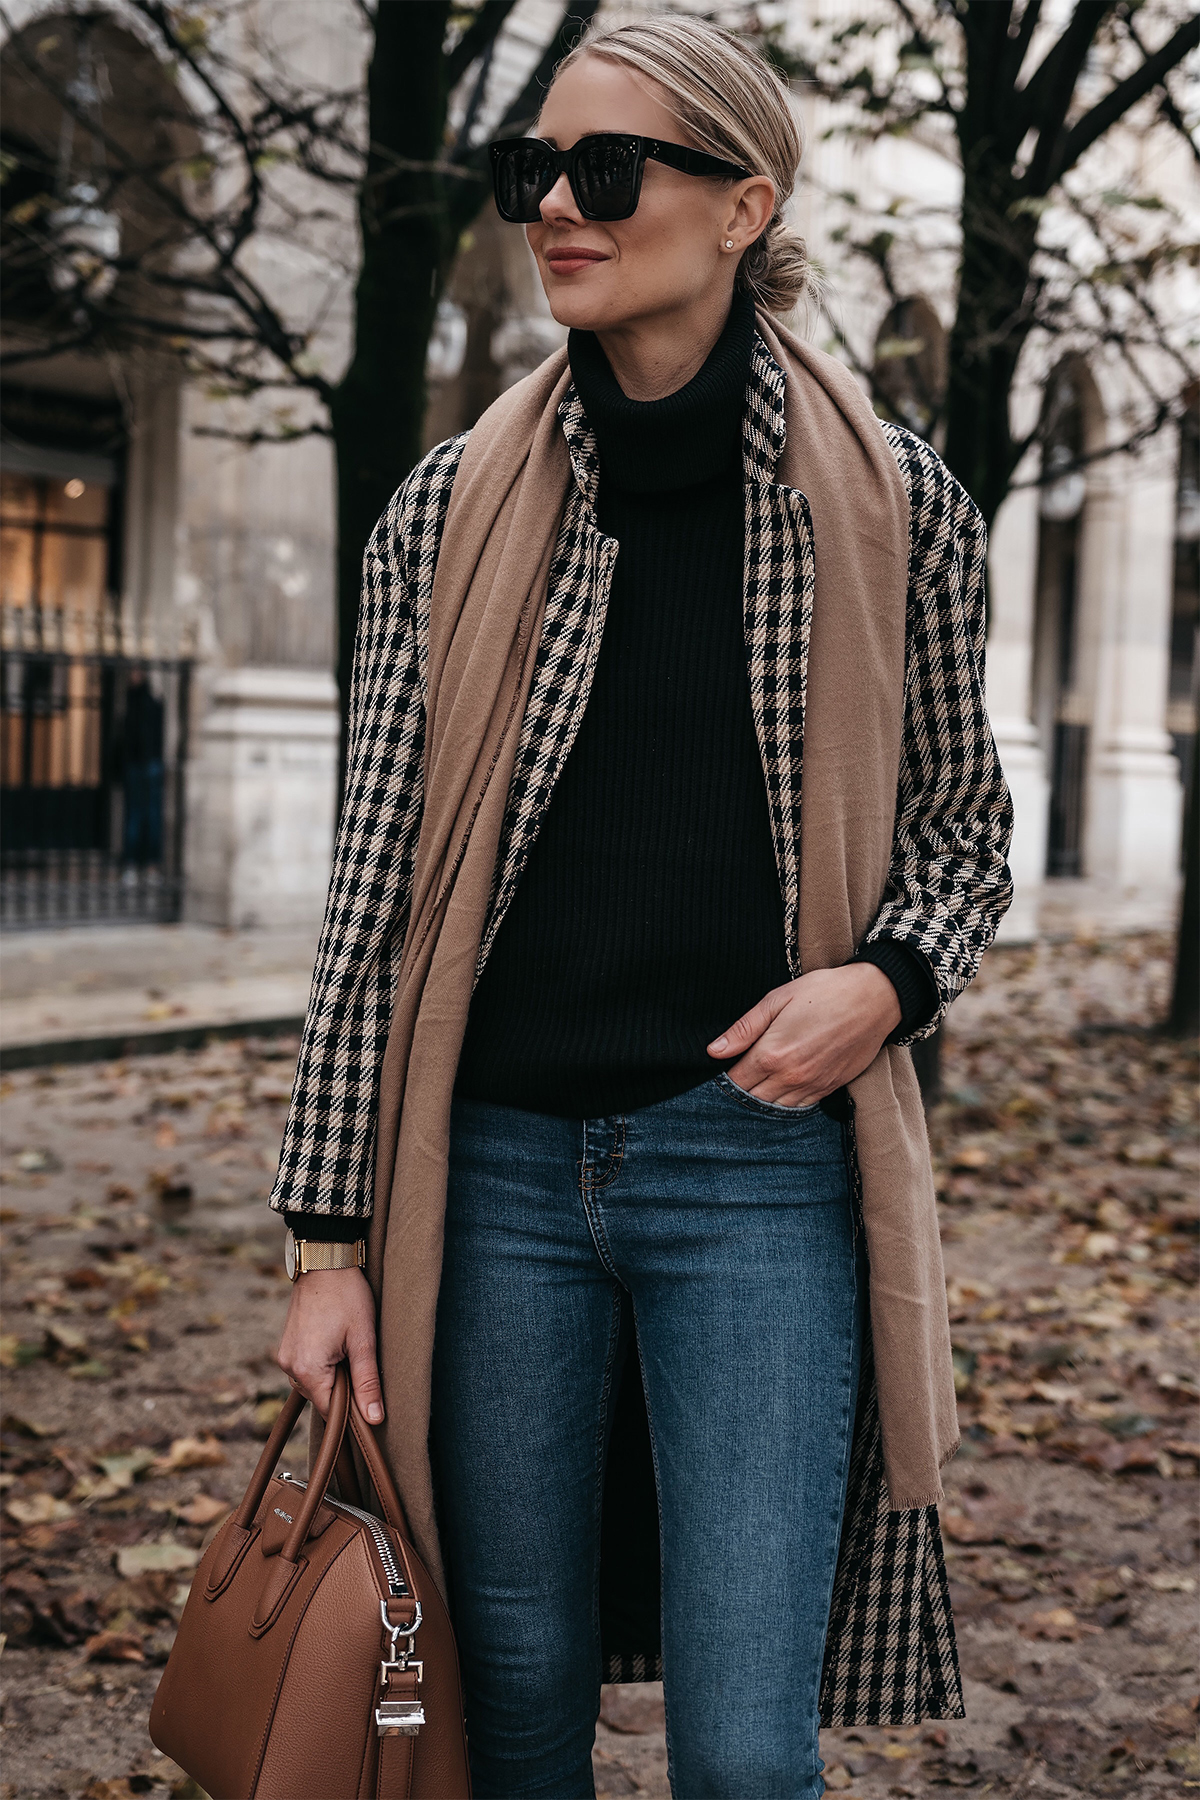 Blonde Woman Wearing Paris France Fall Plaid Check Coat Black Turtleneck Sweater Tan Blanket Scarf Denim Skinny Jeans Givenchy Antigona Cognac Satchel Fashion Jackson Dallas Blogger Fashion Blogger Street Style